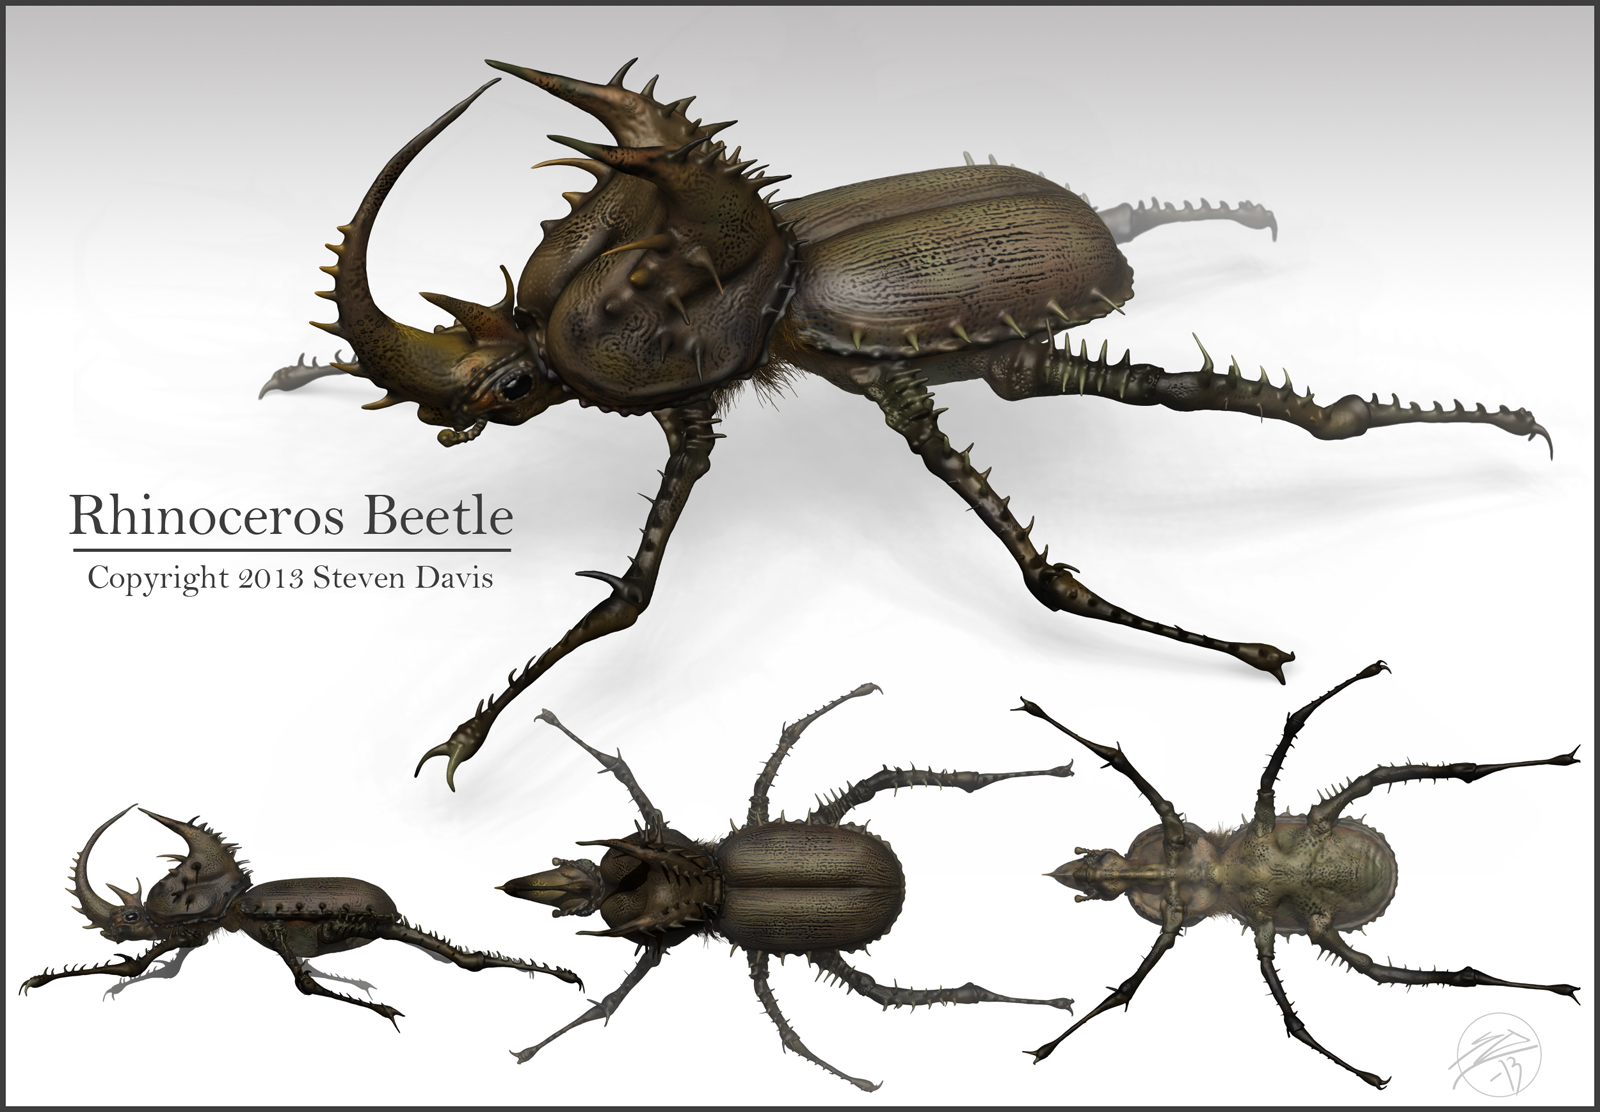 Drawn rhino monster Beetle beetle photo#23 Rhinoceros drawing